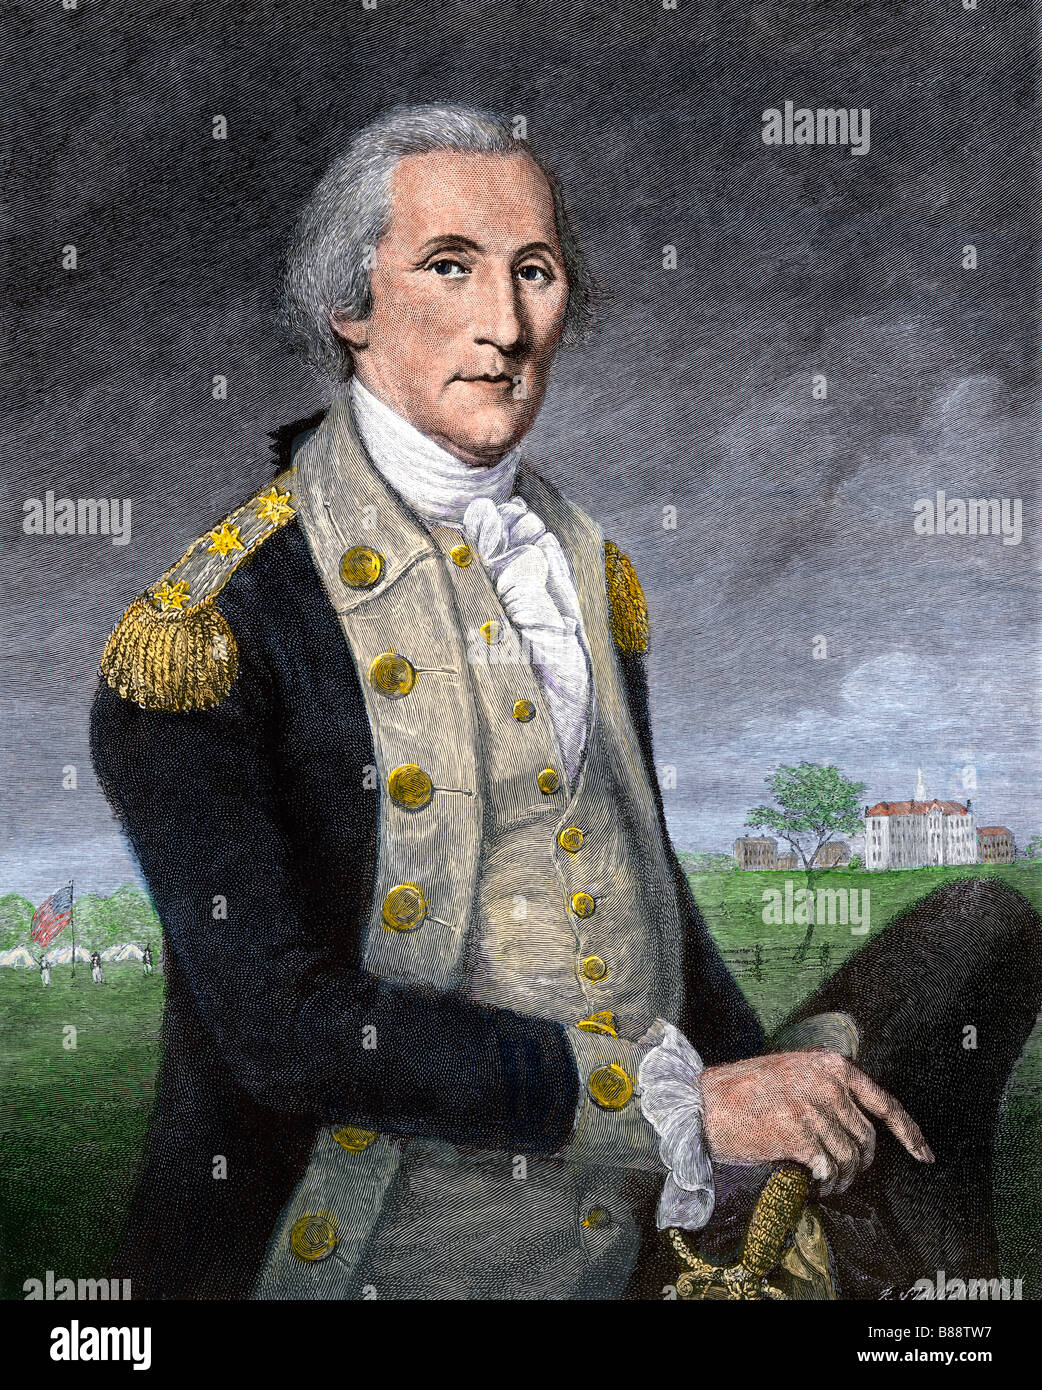 General George Washington at the close of the Revolutionary War. Hand-colored engraving - Stock Image